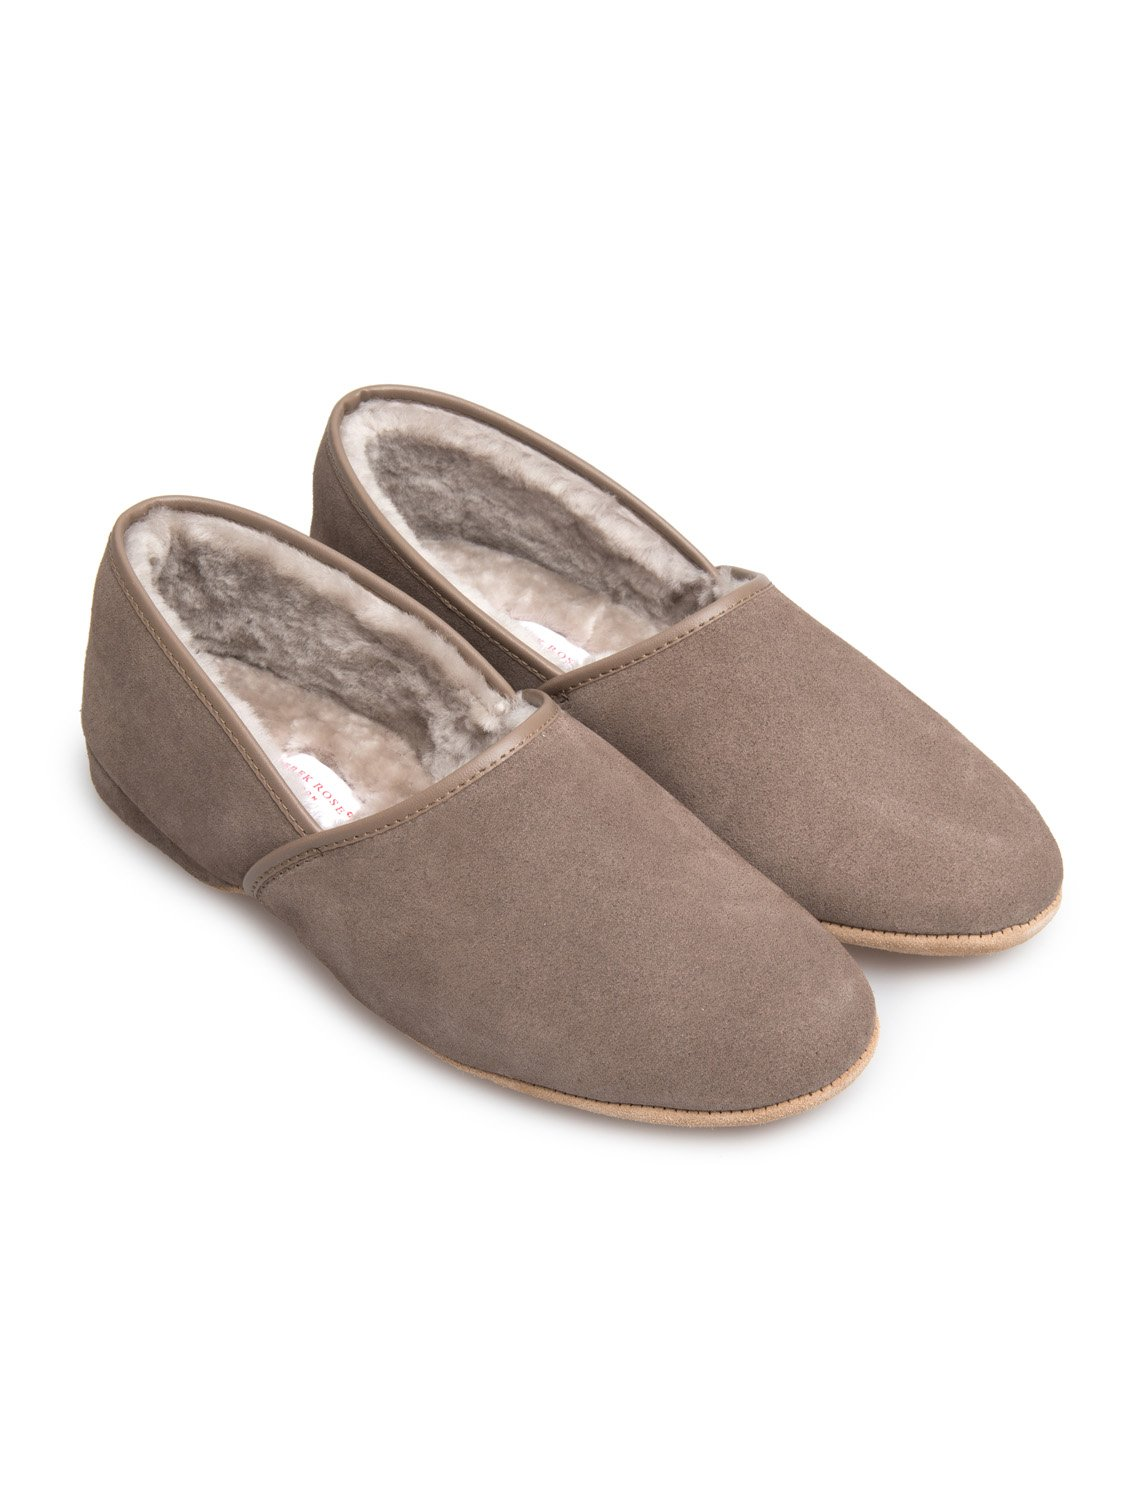 Men's Closed-Back Slipper Crawford Sheepskin Beige